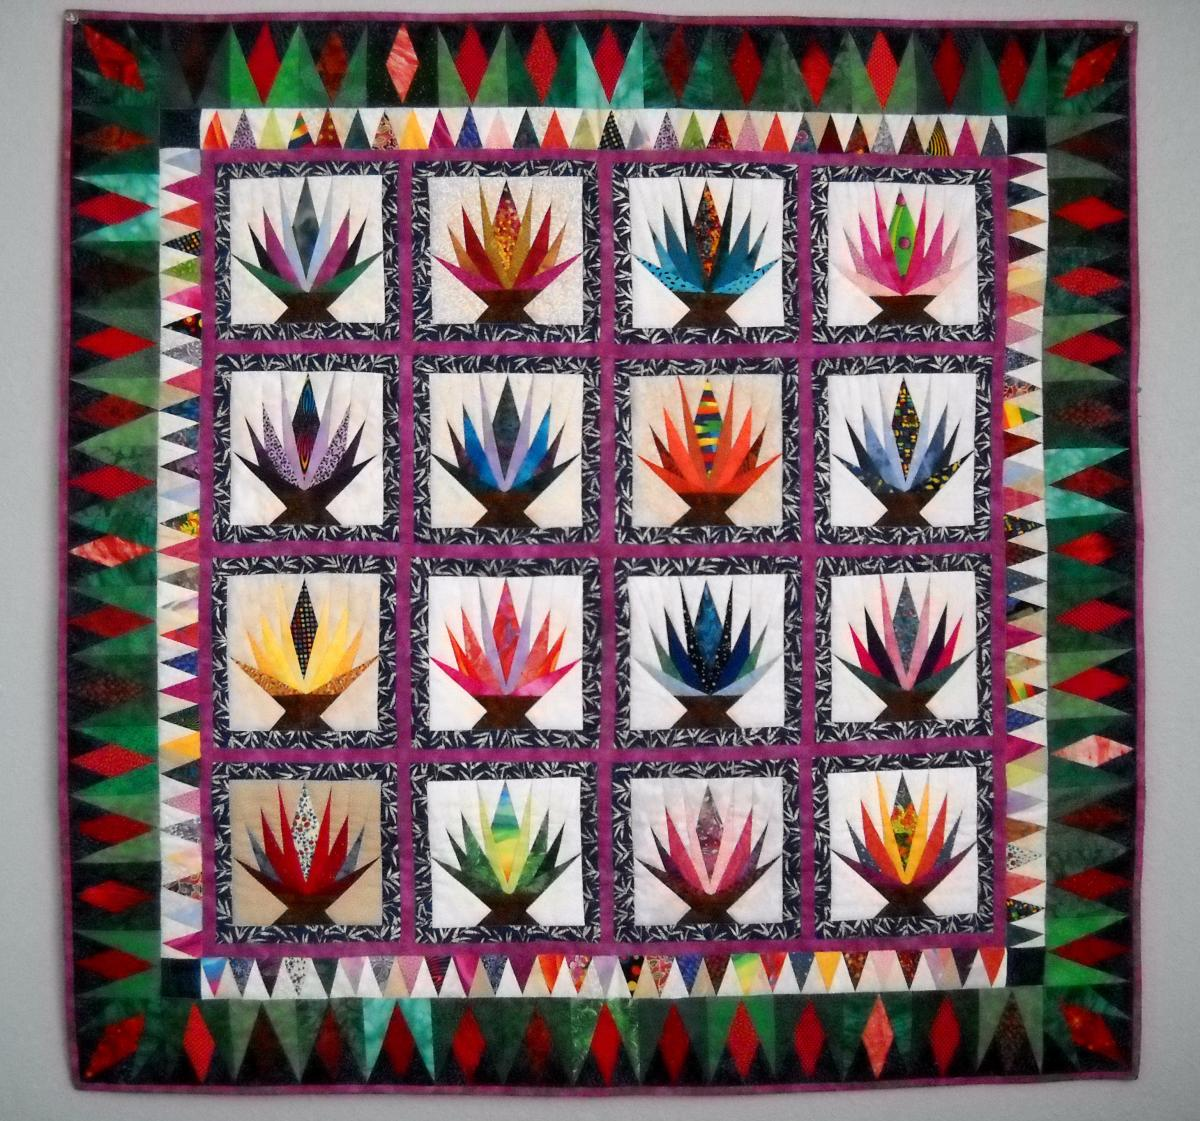 Pam's Quilts & More